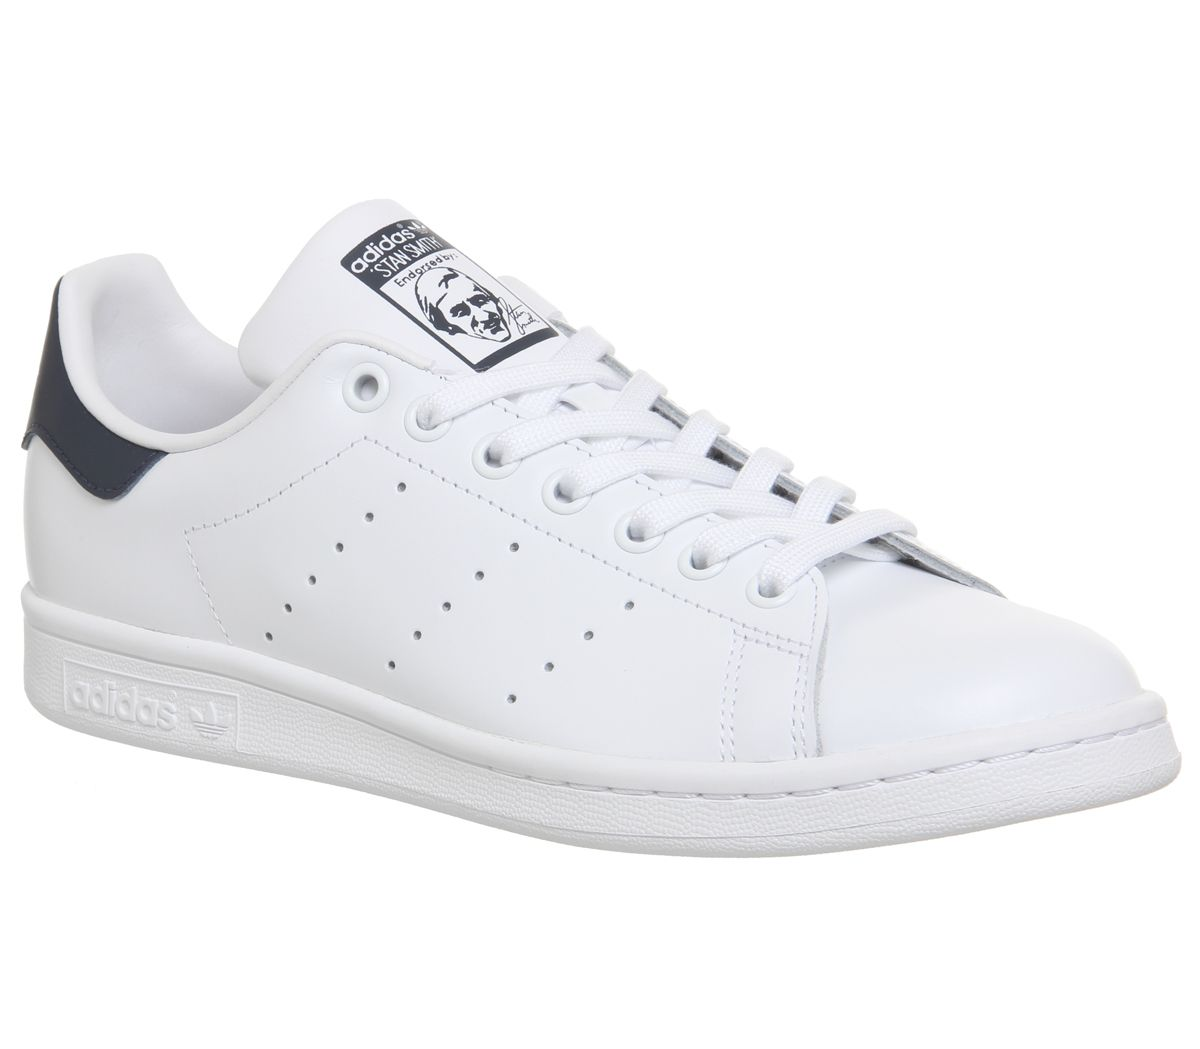 separation shoes 9caff 07d56 Sentinel Mens Adidas Stan Smith Trainers Core White Dark Blue Trainers Shoes